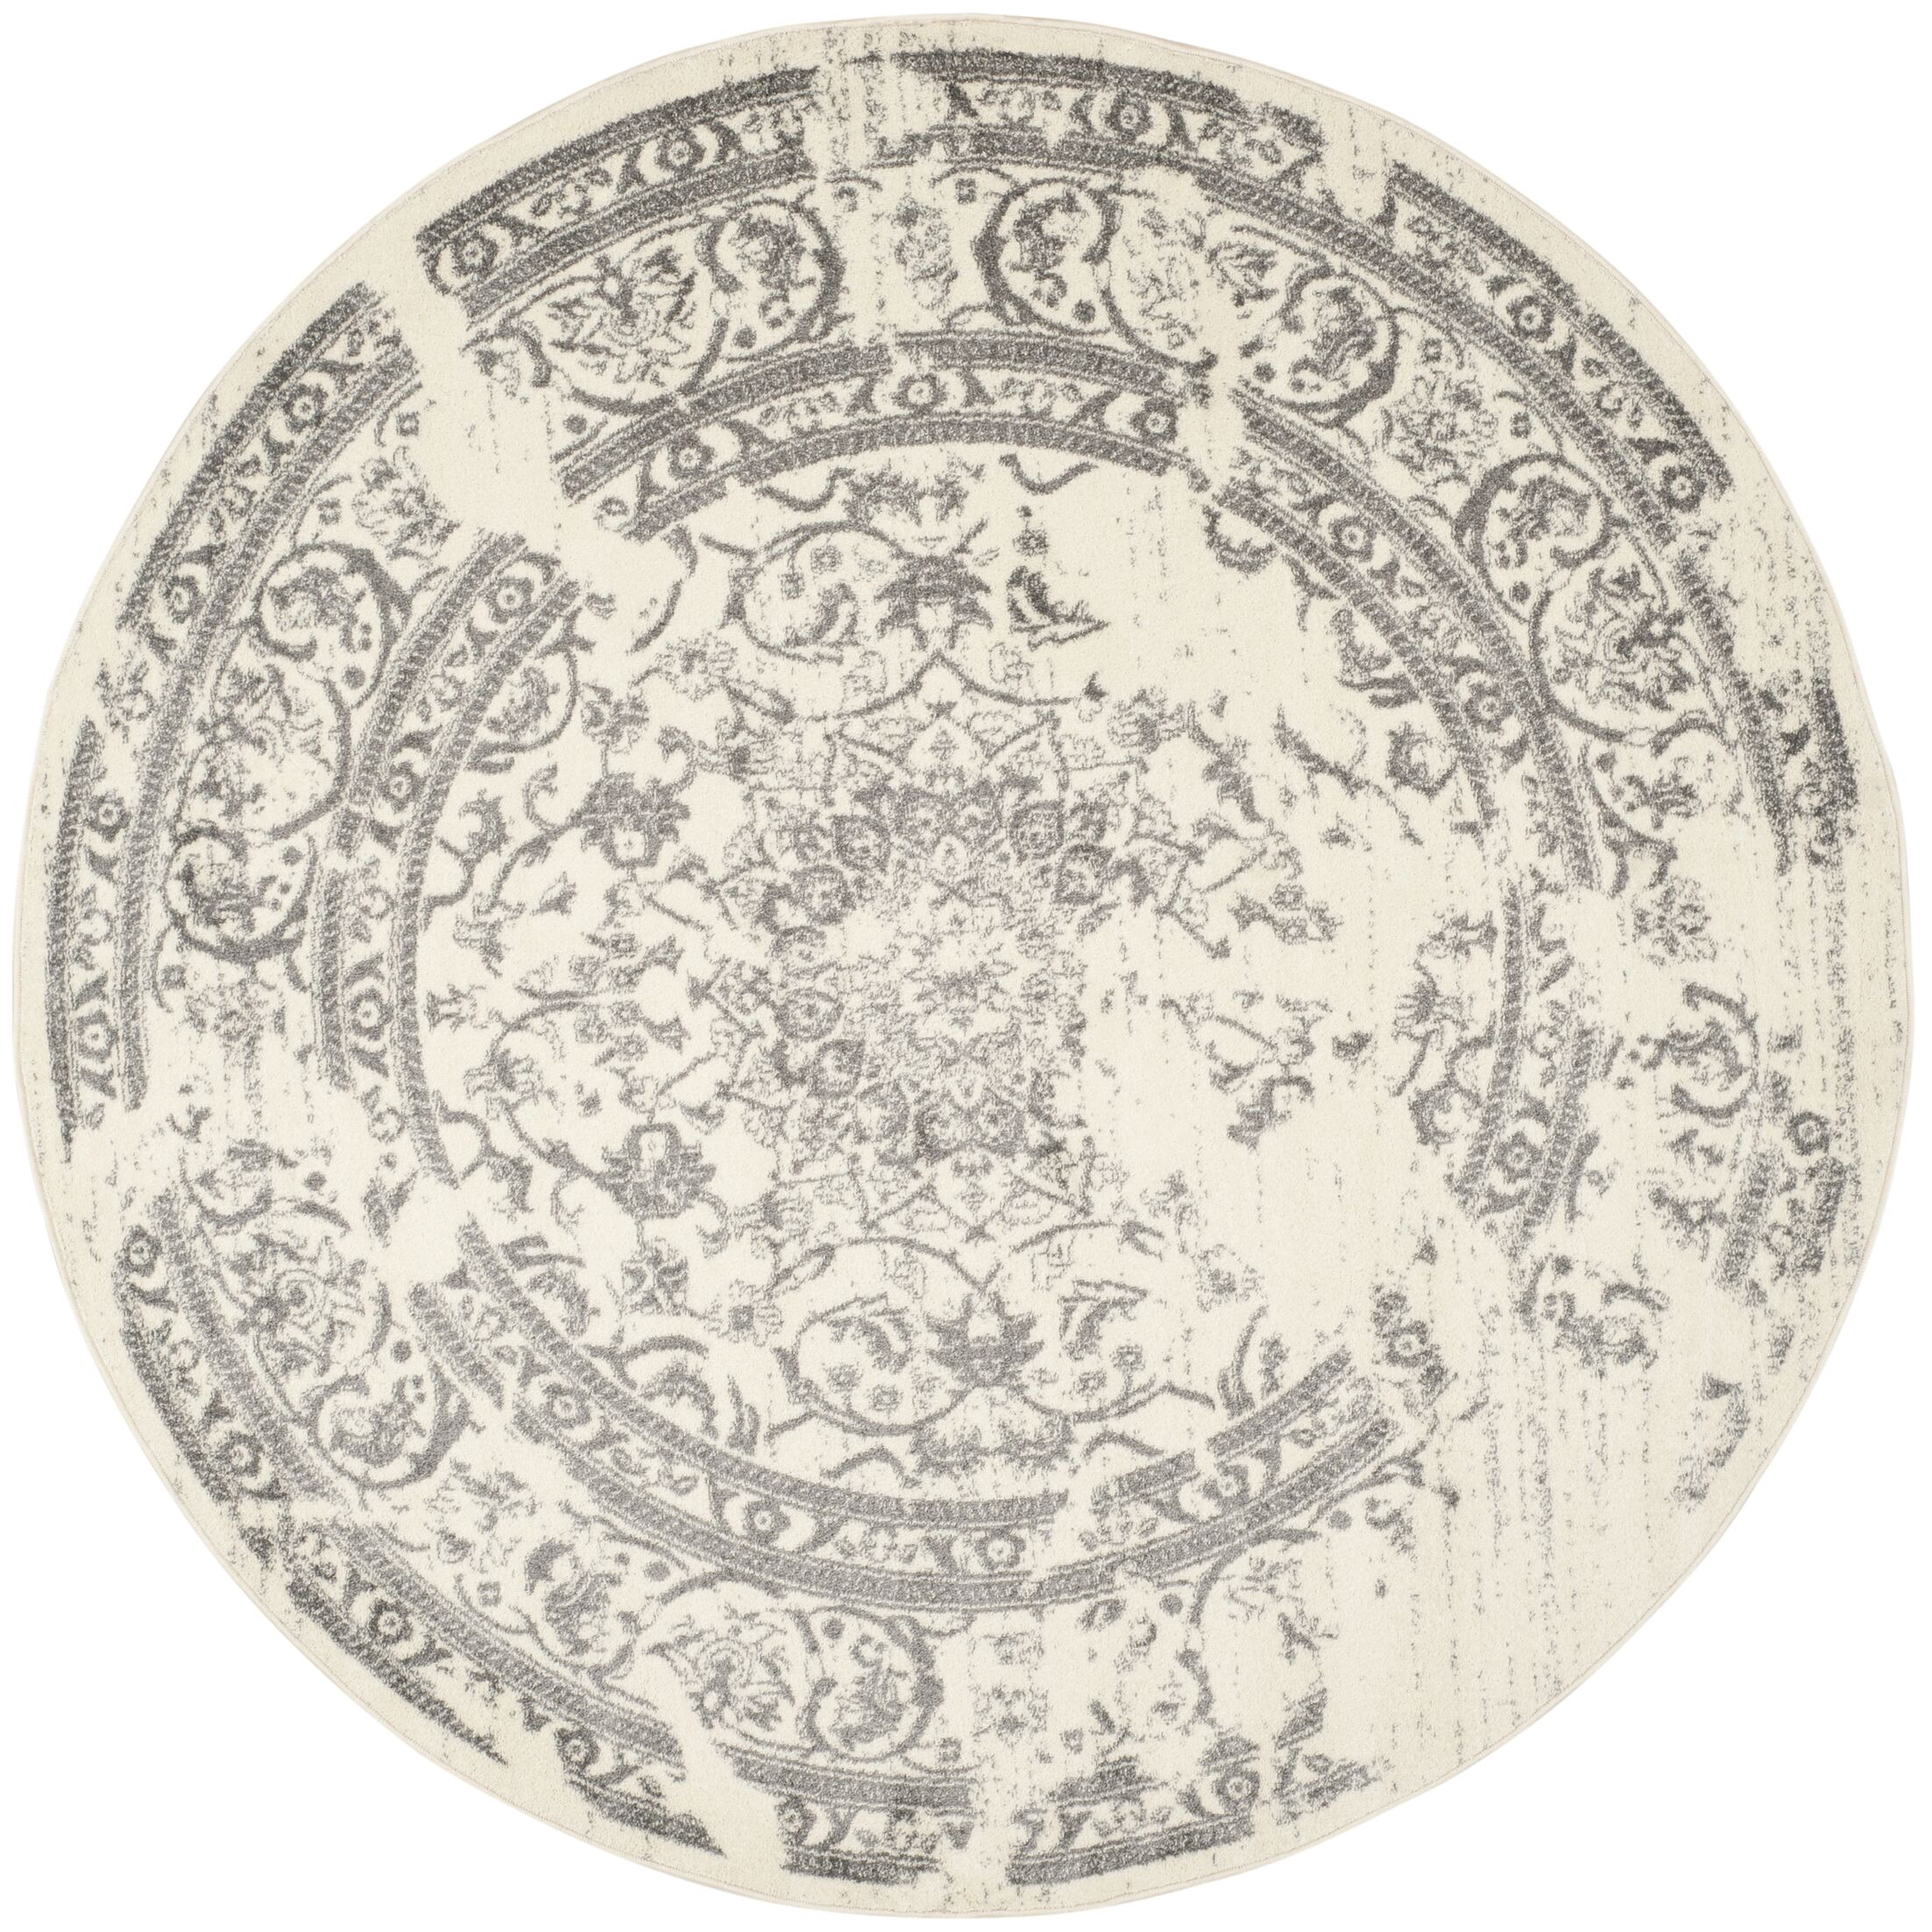 Costa Mesa Ivory/Silver Area Rug Rug Size: Round 6'